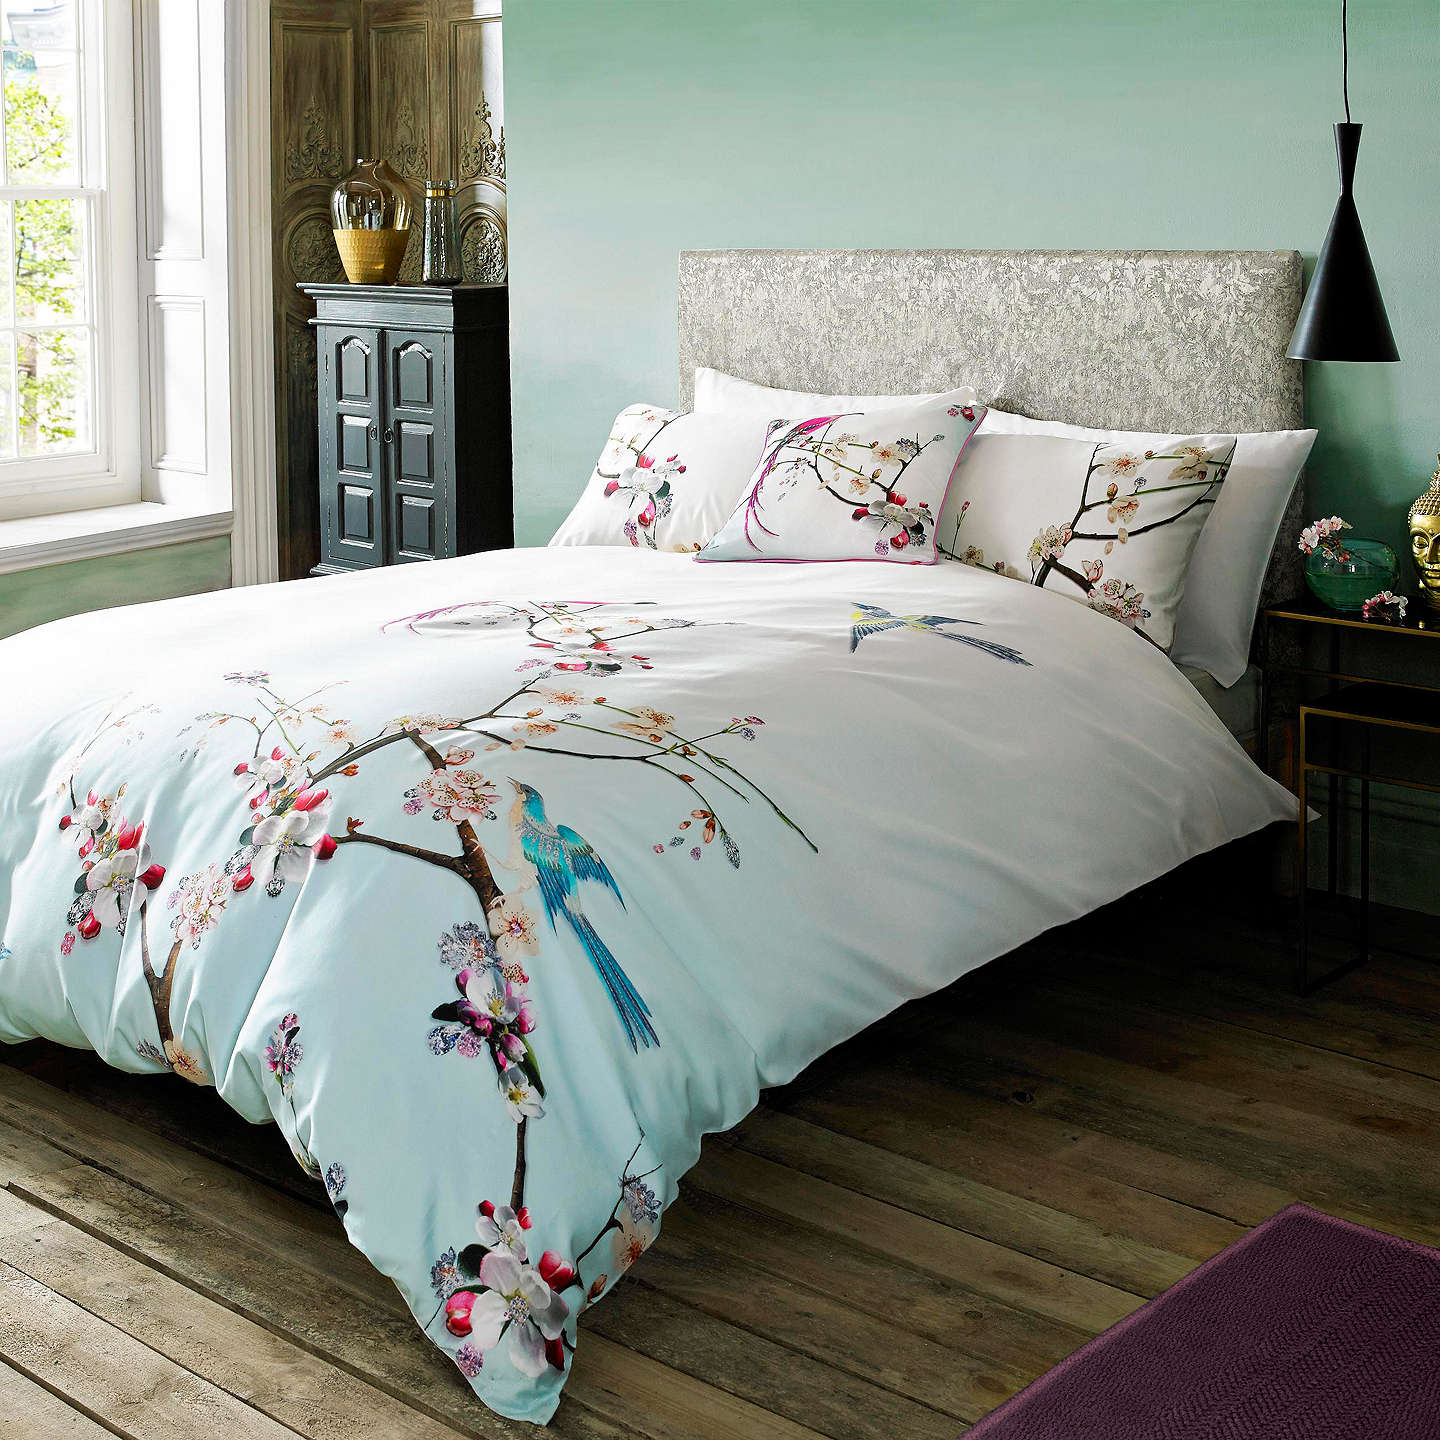 BuyTed Baker Flight of the Orient Cotton Standard Pillowcase, Pair, Multi Online at johnlewis.com